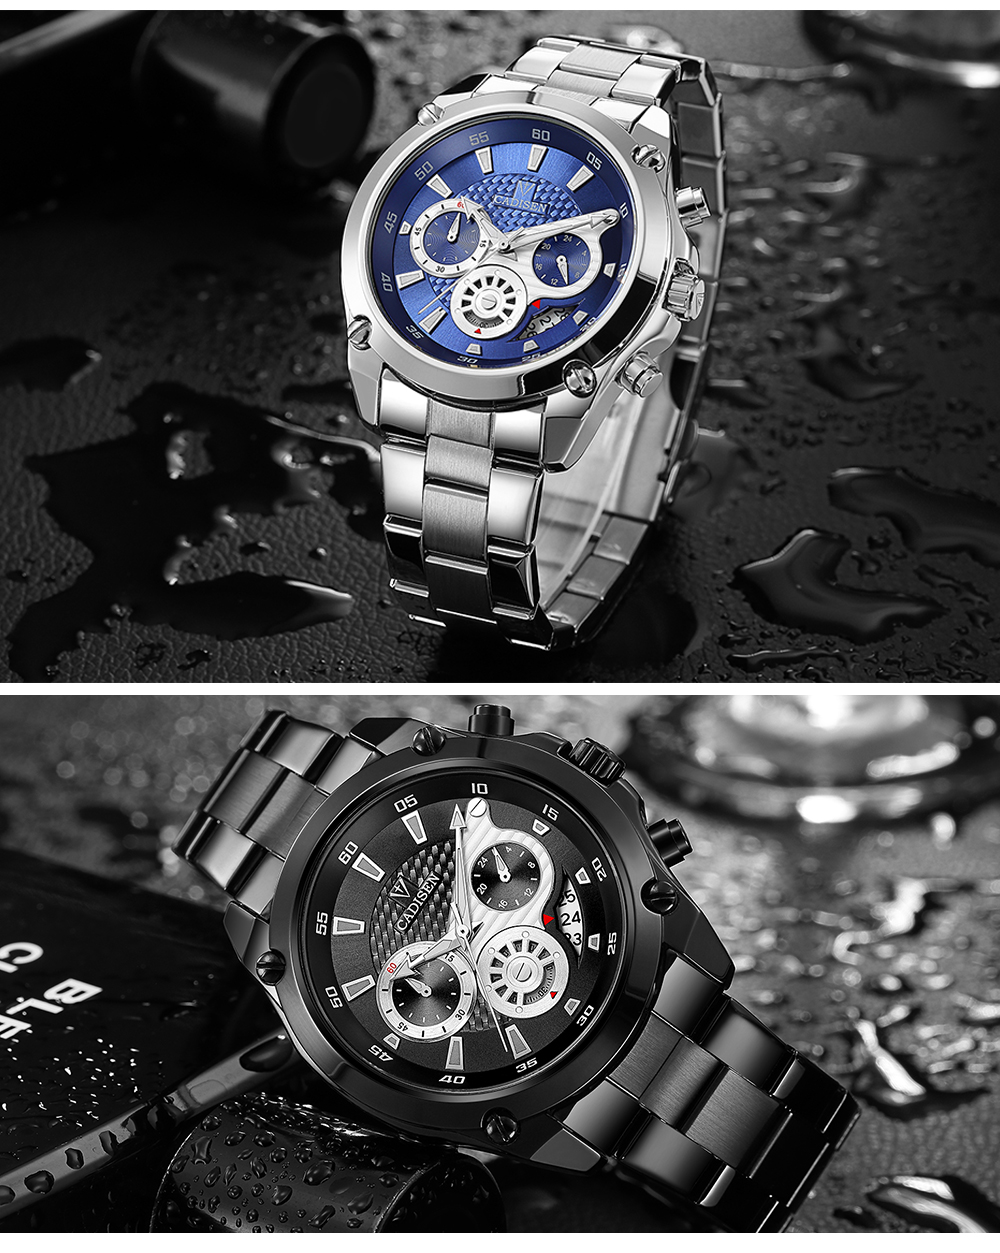 Top Brand Luxury CADISEN Mens Watch Full Steel Sport Watches Fashion Quartz Military Wrist Watch Relogio Masculino Waterproof 10